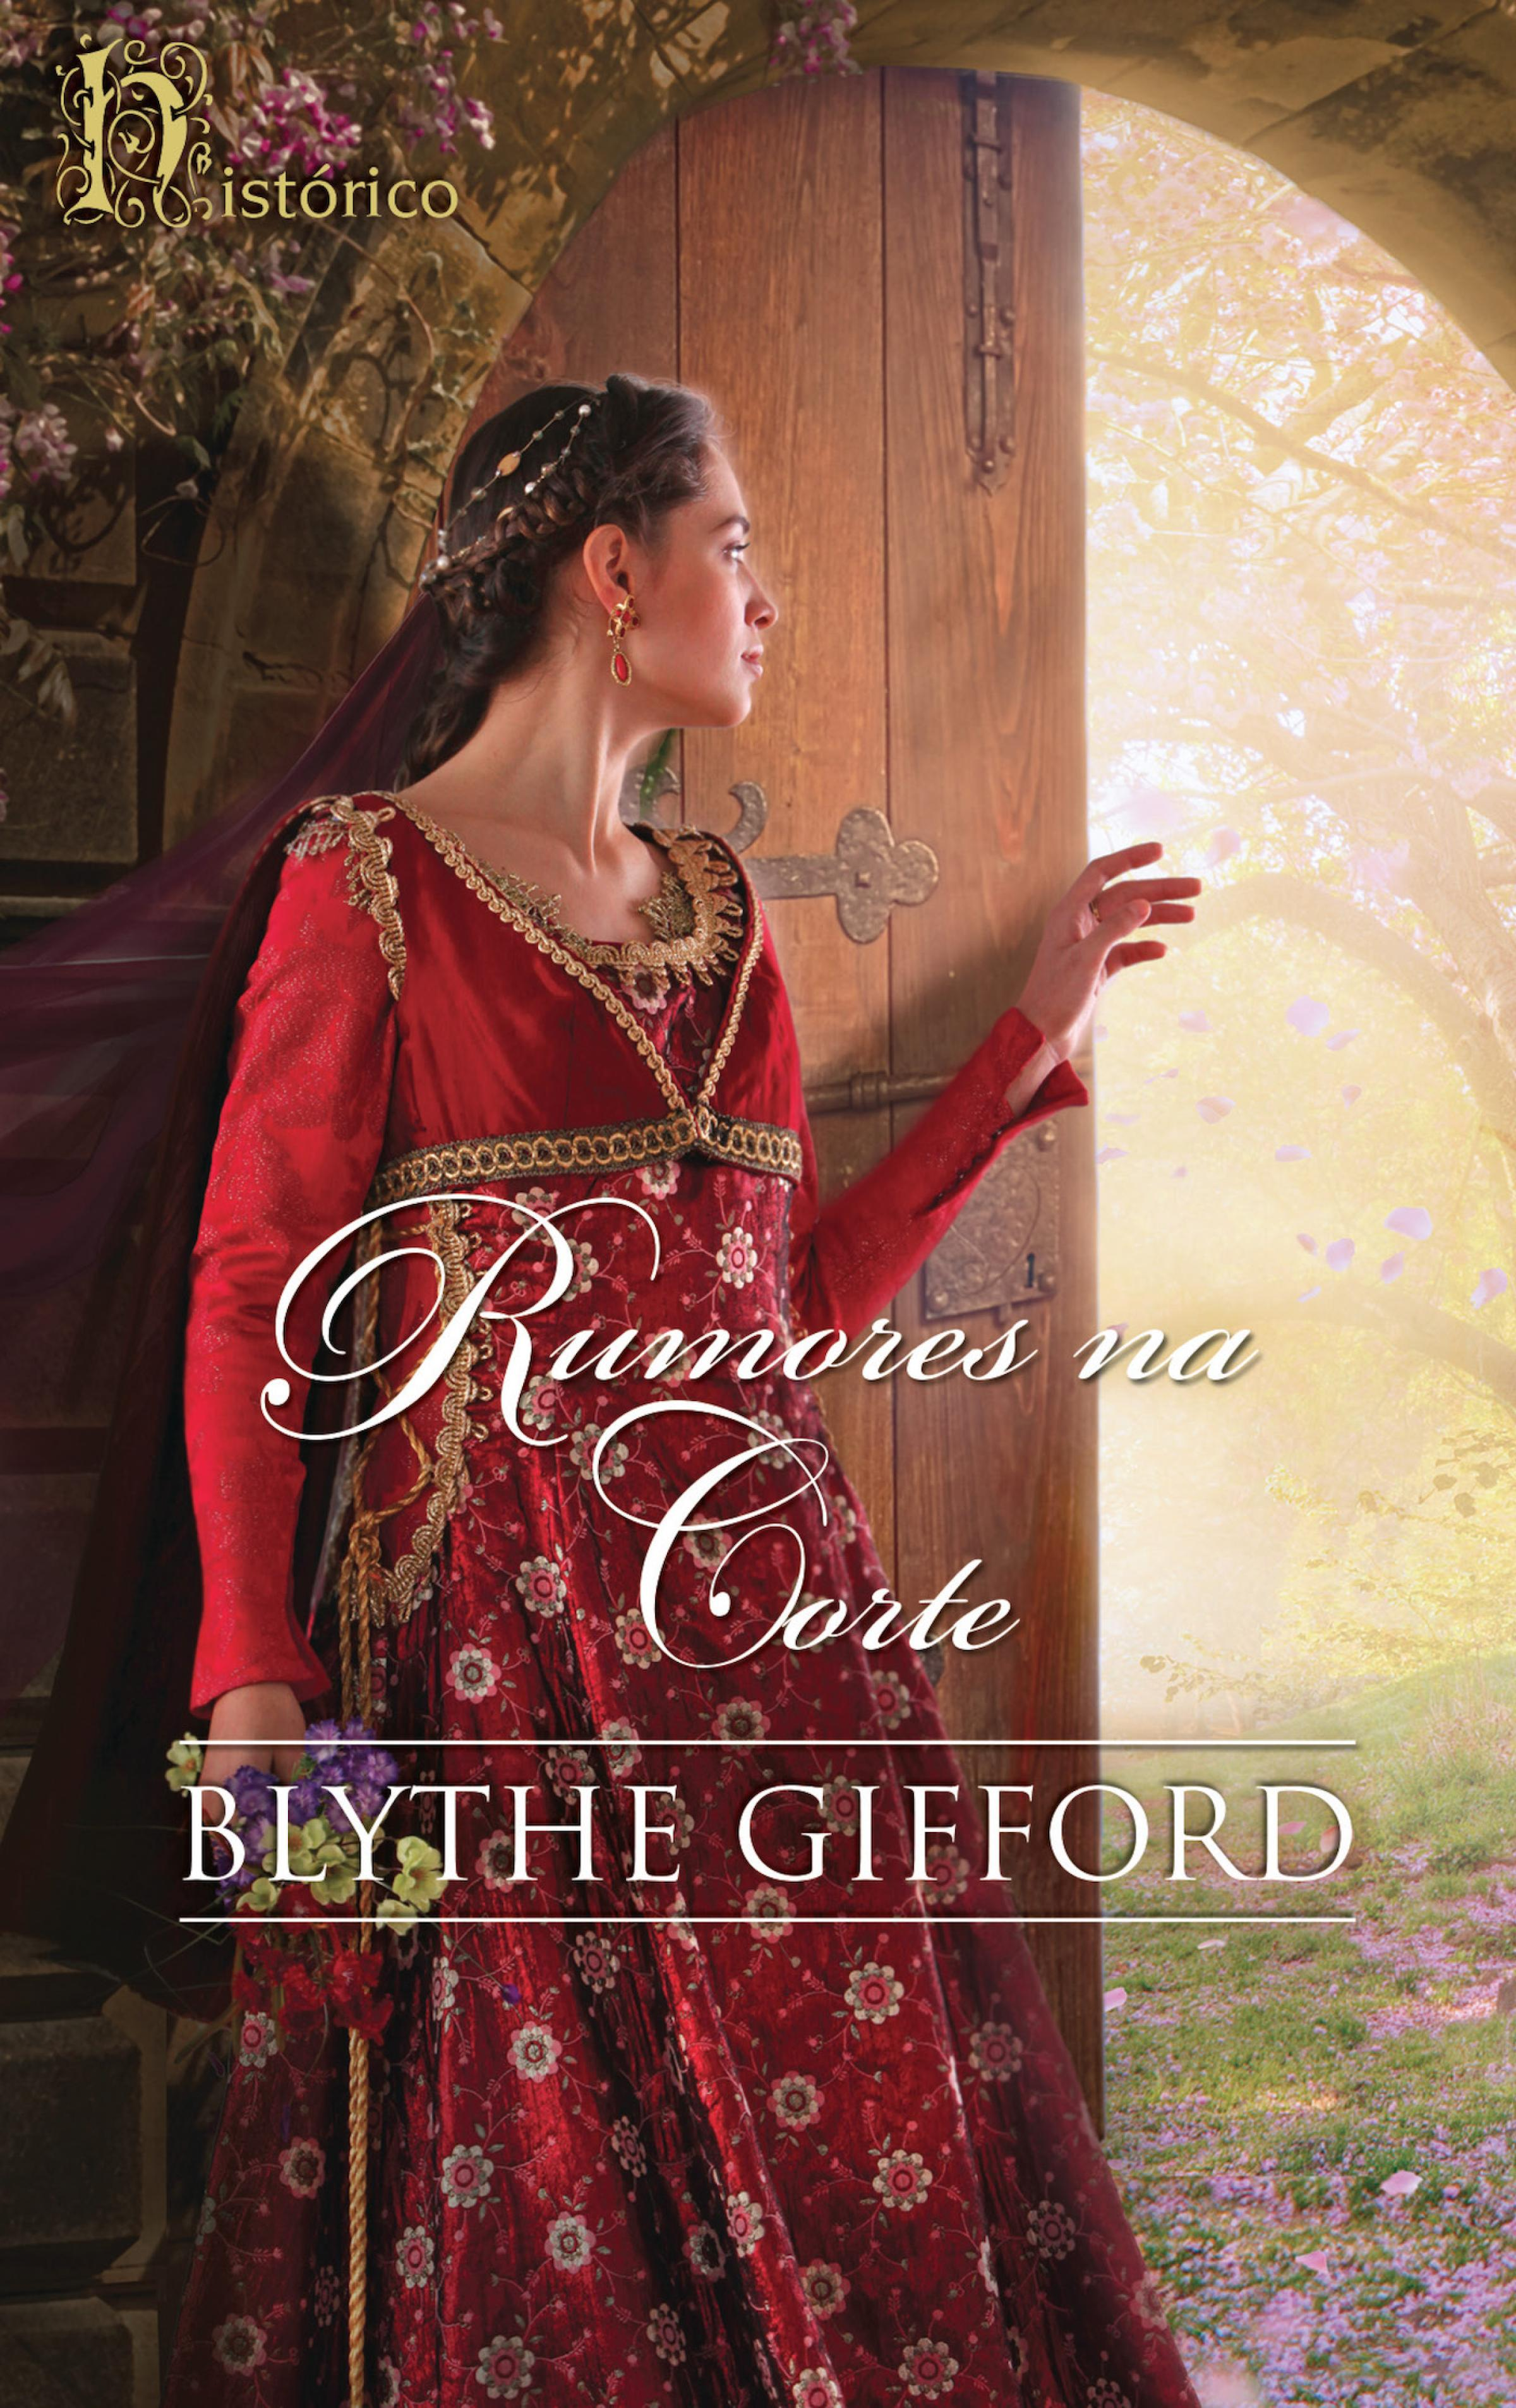 Blythe Gifford Rumores na corte